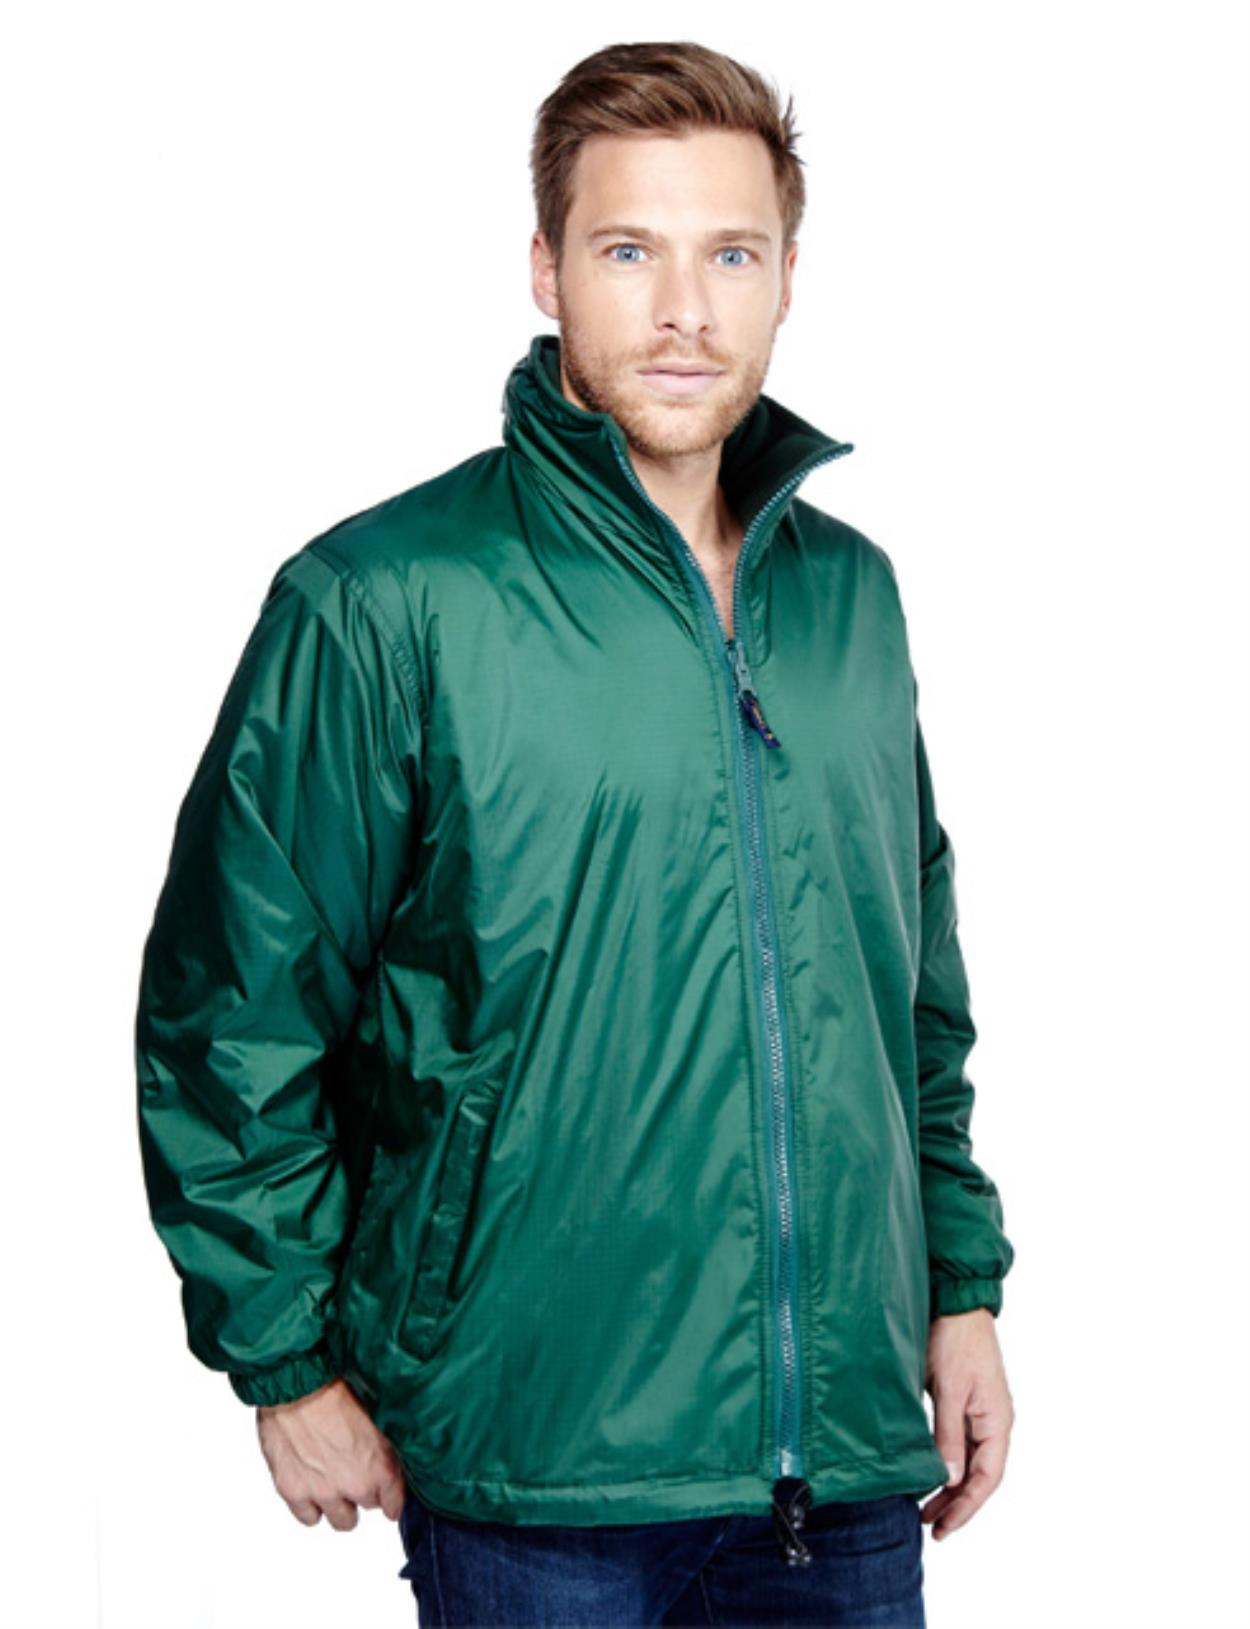 UC605 - Premium Reversible Fleece Jacket